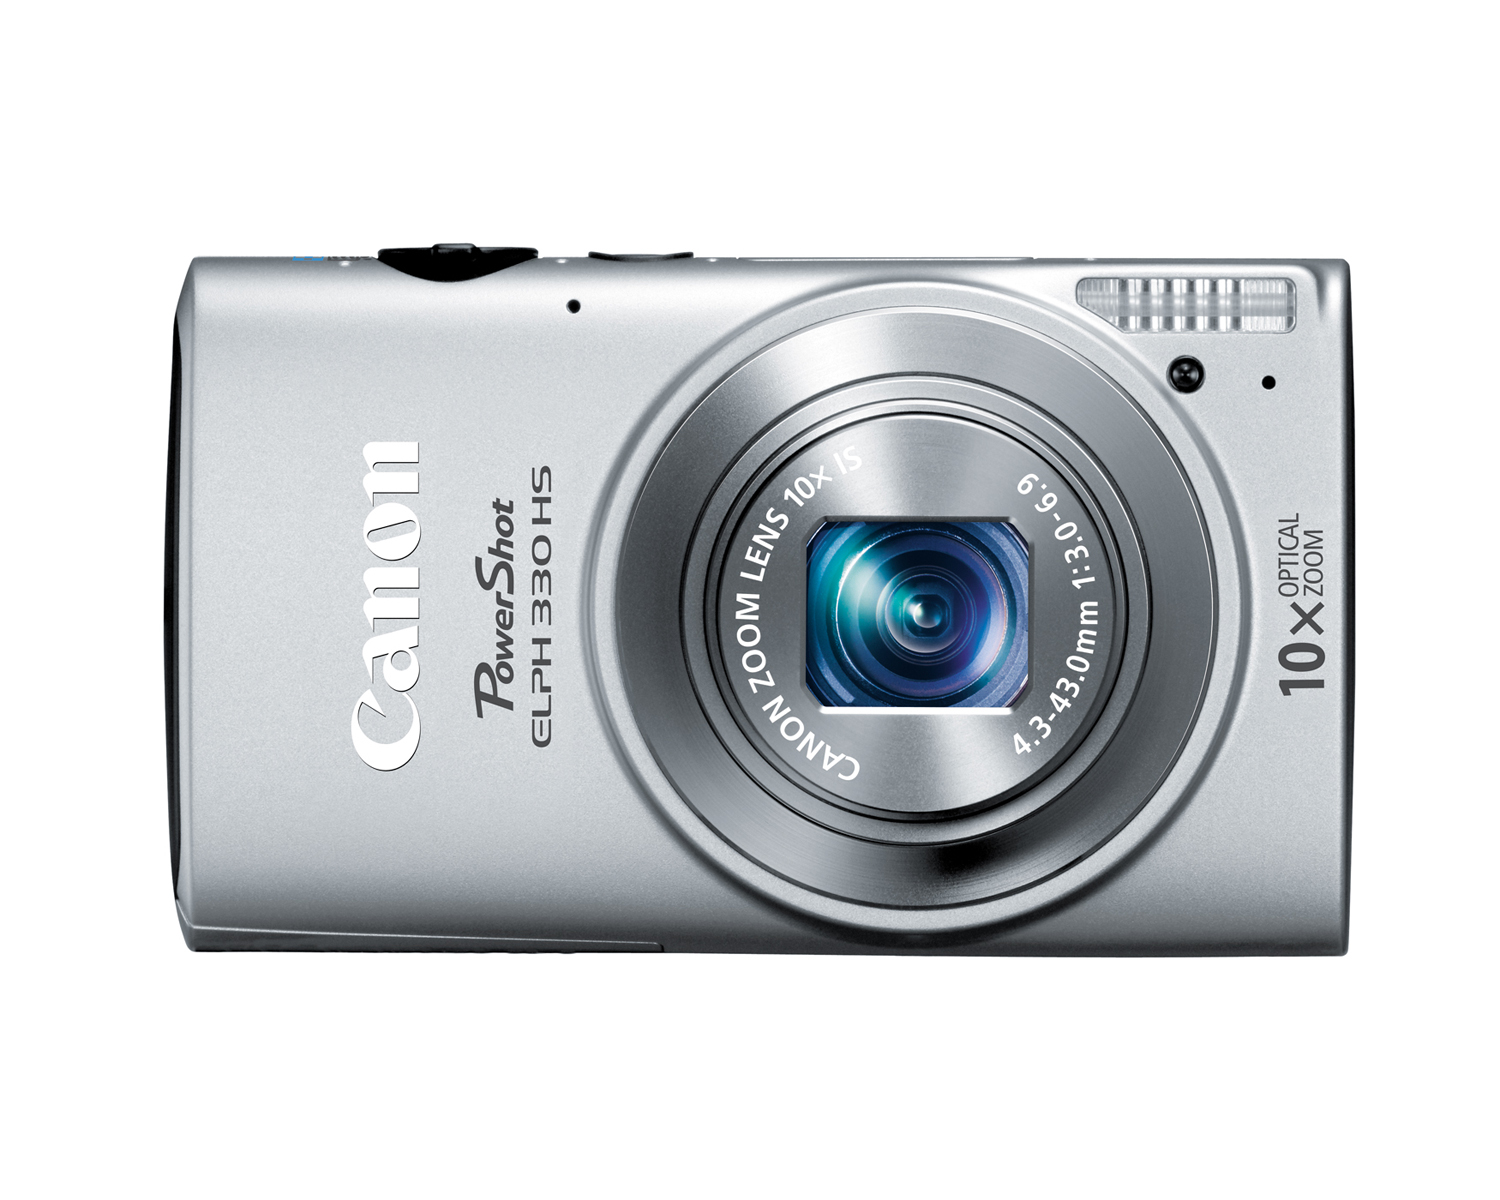 CANON POWERSHOT A360 DOWNLOAD DRIVERS